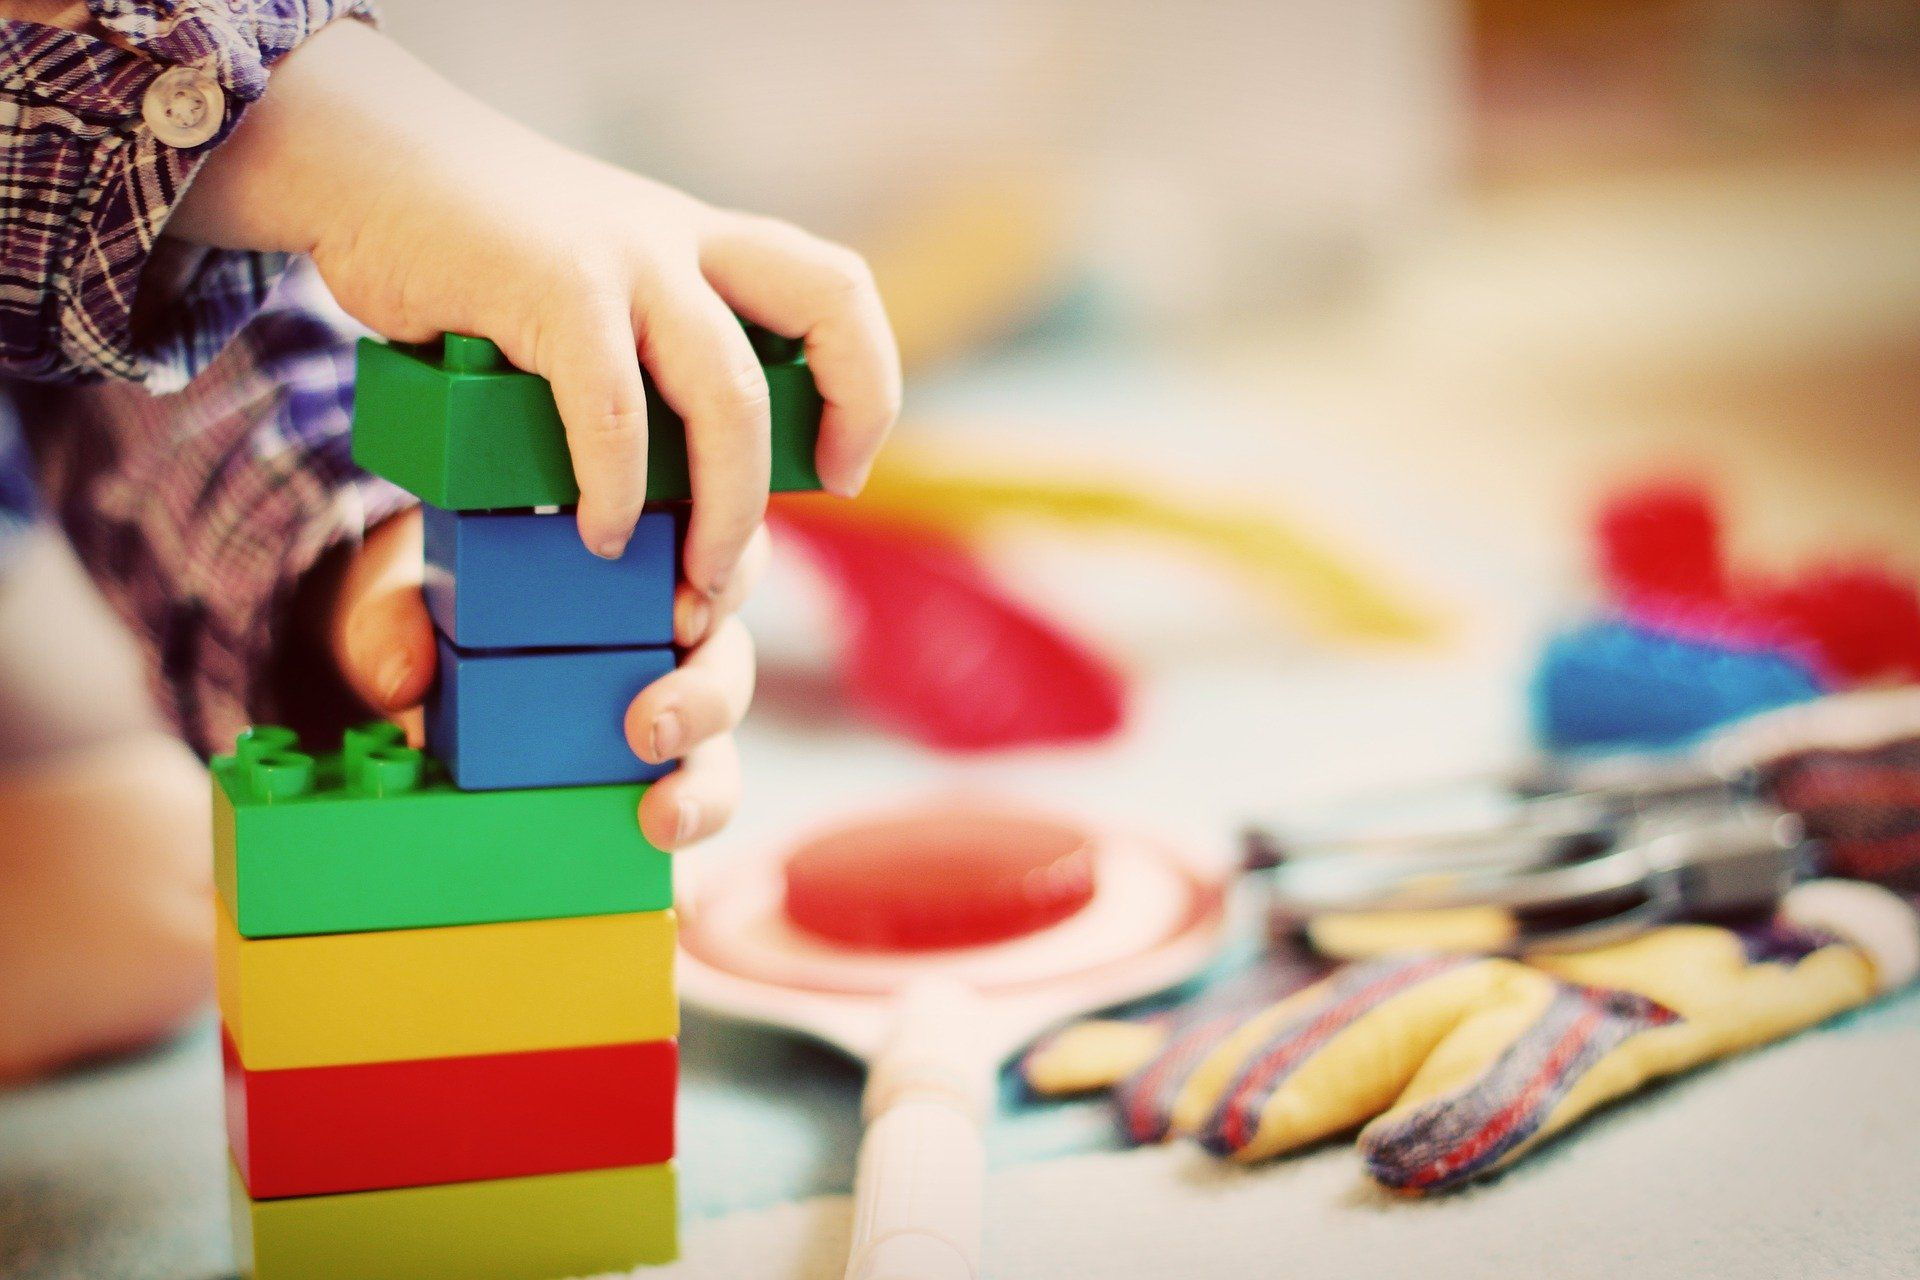 A child playing with small toy blocks.